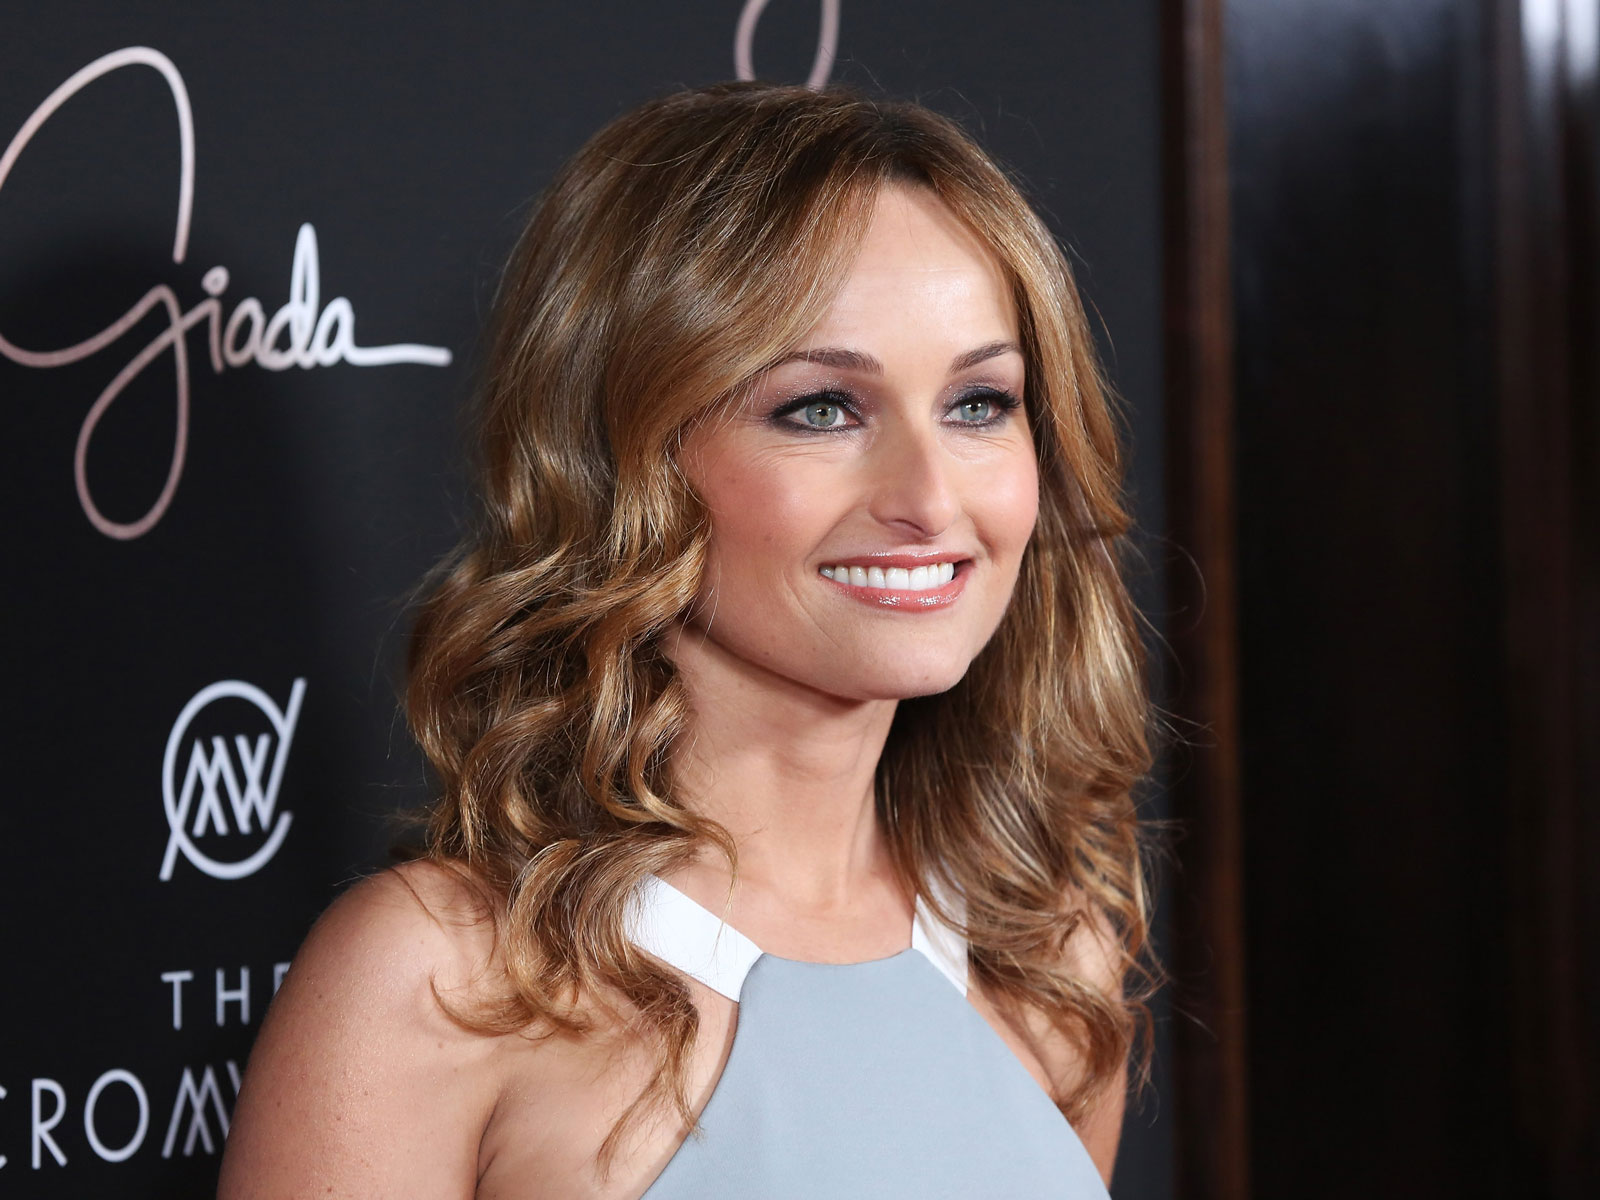 Giada De Laurentiis Is Mixing Things Up at Her New Baltimore Restaurant